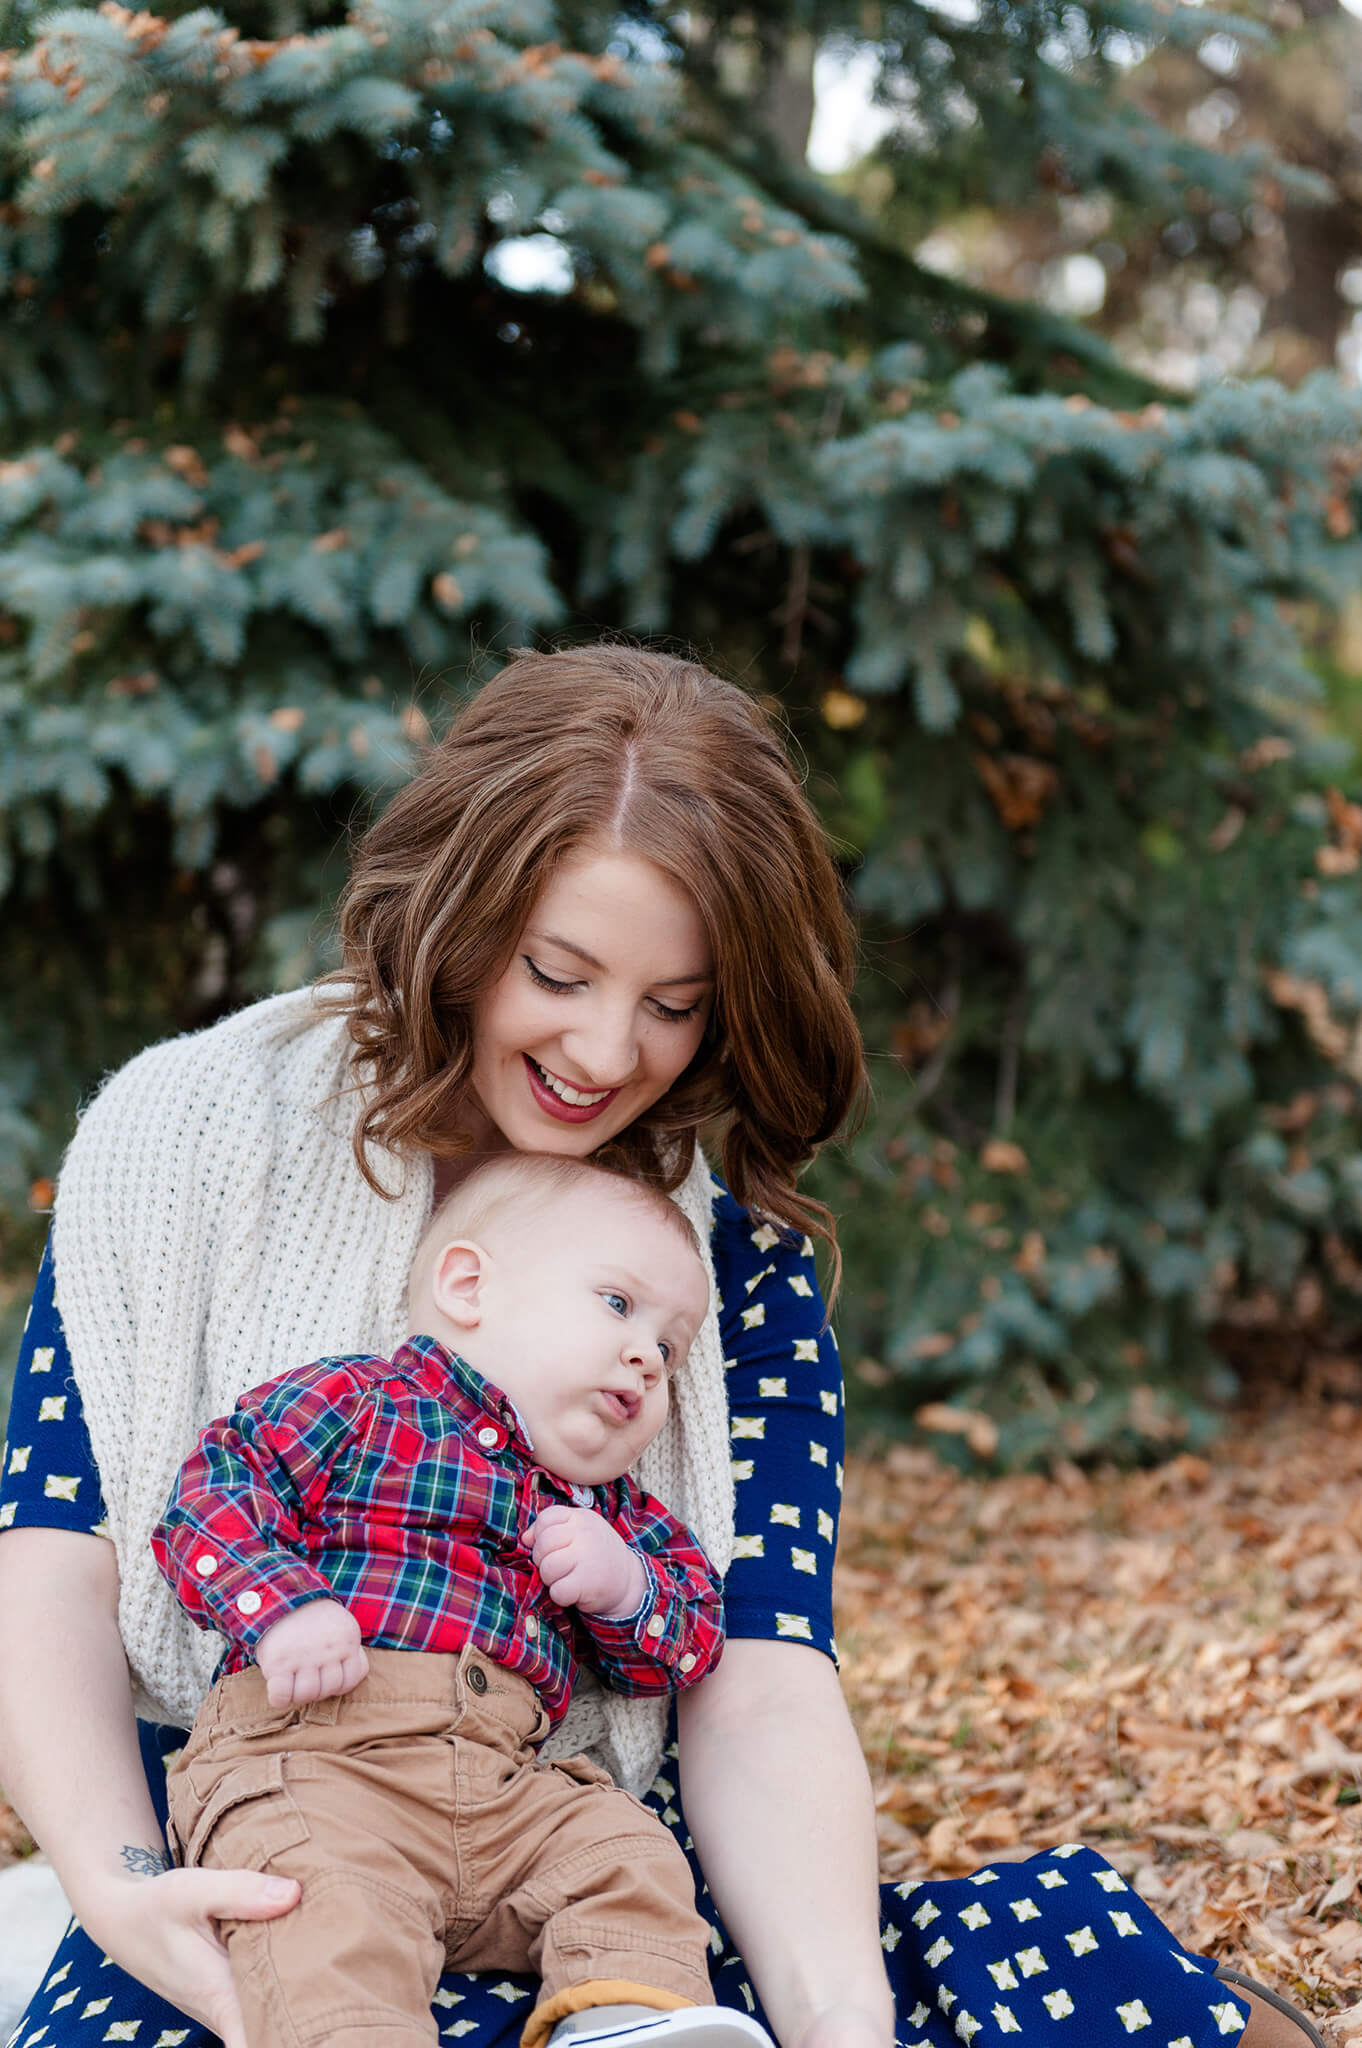 Mom cuddles with baby boy in the fallen leaves